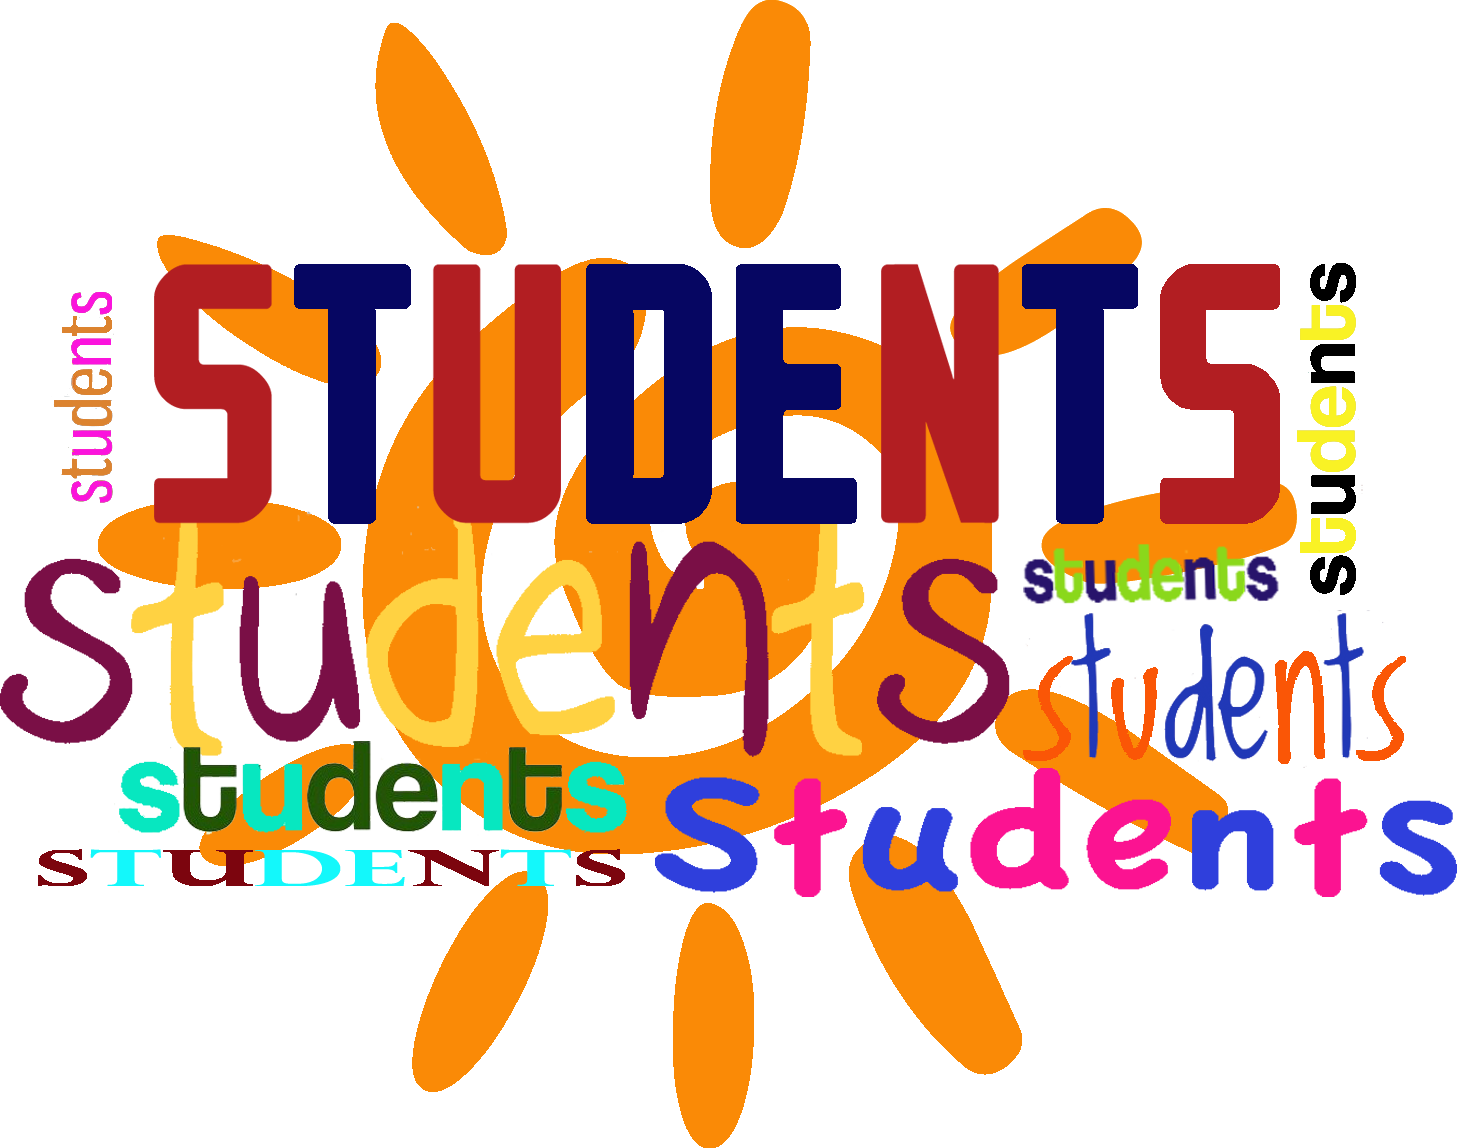 Transparent star student clipart clipart free Minor Middle School Student Survey - Minor Middle School clipart free